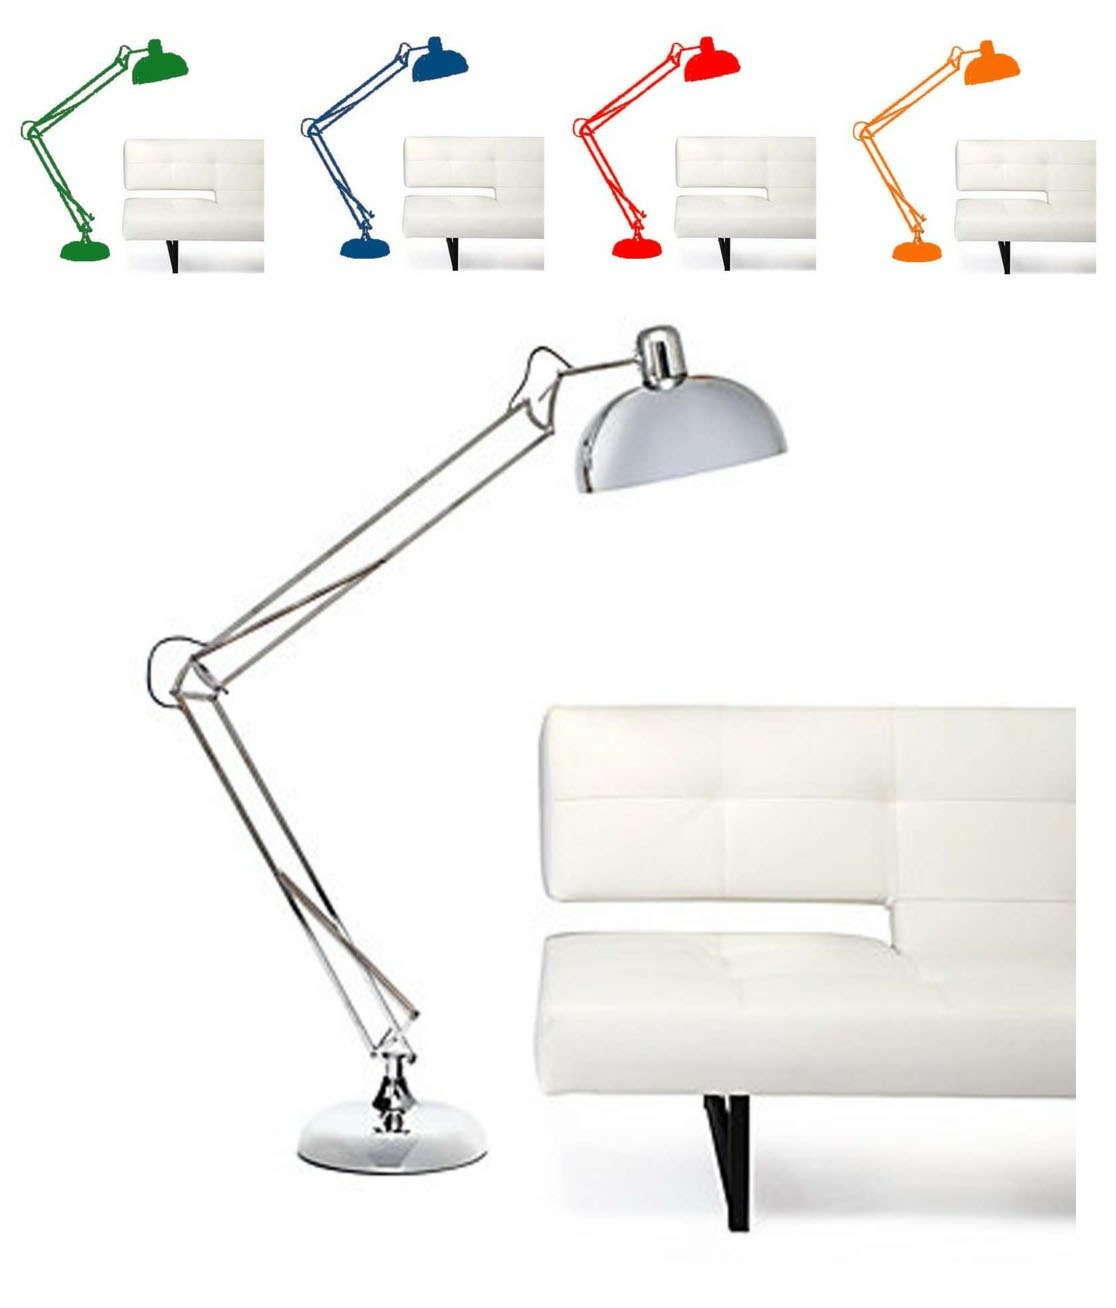 "ND Tip:  Pick a color…any color! Realize the floor lamp's potential. Try seeking out a local auto body repair shop and find out if they can do a paint job for you!      SPRING FLOOR LAMP    $199      The classic desk lamp silhouette has evolved to make an appearance as our full-fledged Spring floor lamp. In shiny Silver chrome, the tight spring mechanism allows the lamp to assume innumerable positions for desired use. The dome shade holds up to a 75 watt bulb, and comes with a three-way CFL bulb. The lamp stands 75"" tall with a 14"" diameter shade and a sturdy 13"" diameter stand."